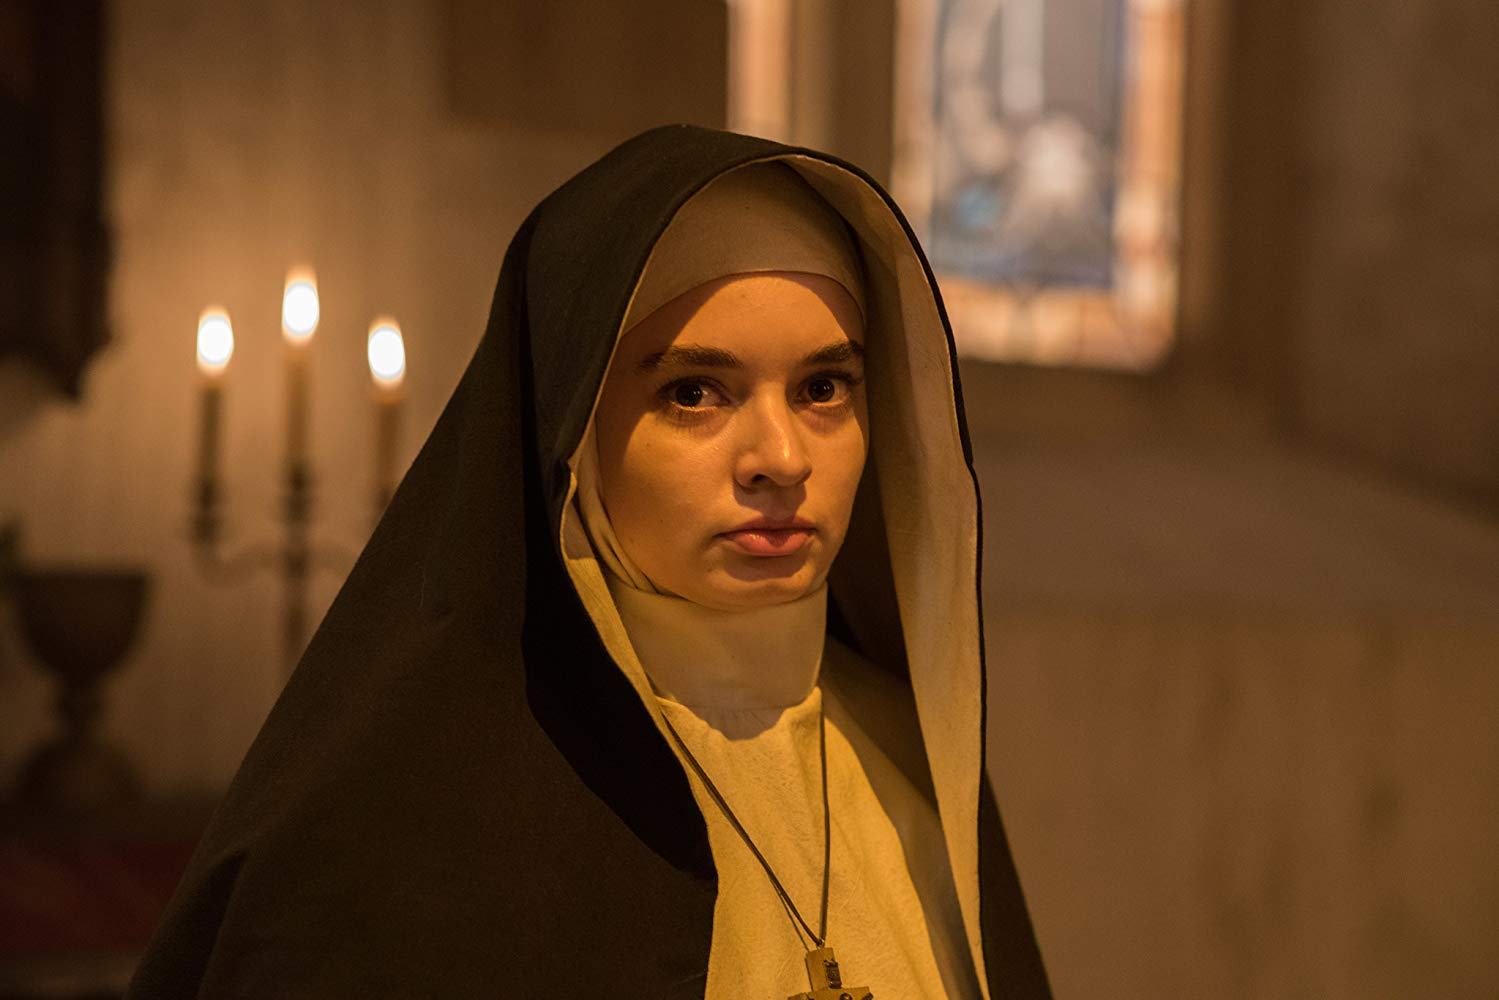 The Nun (La nonne)